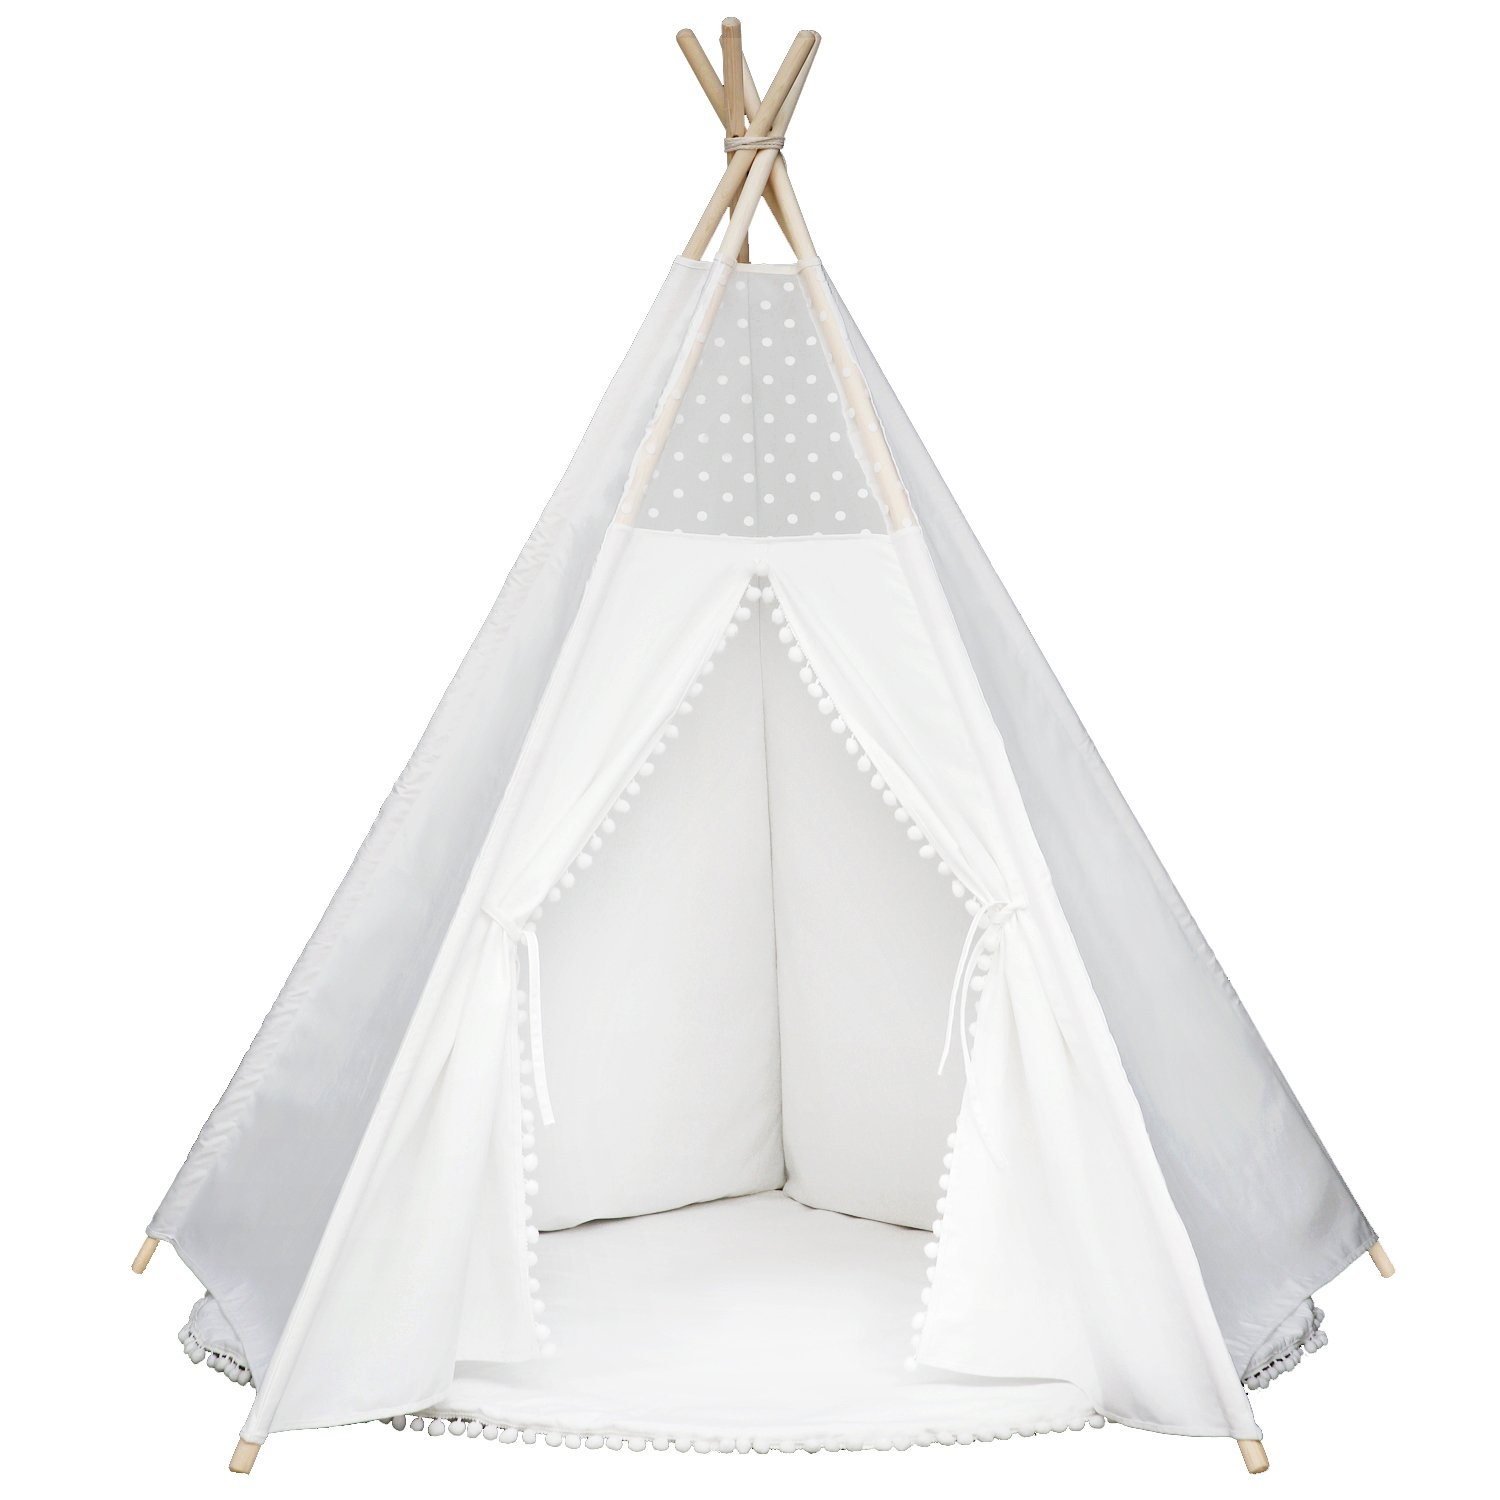 Wonder Space Princess Teepee Pompon Fairy Tent - 5u0027 Large Handcrafted White Lace Pom Pom Cotton Canvas Play Tent Kids Playhouse Five-Sided Walls with Door ...  sc 1 st  Amazon.com & Amazon.com: Wonder Space Princess Teepee Pompon Fairy Tent - 5 ...